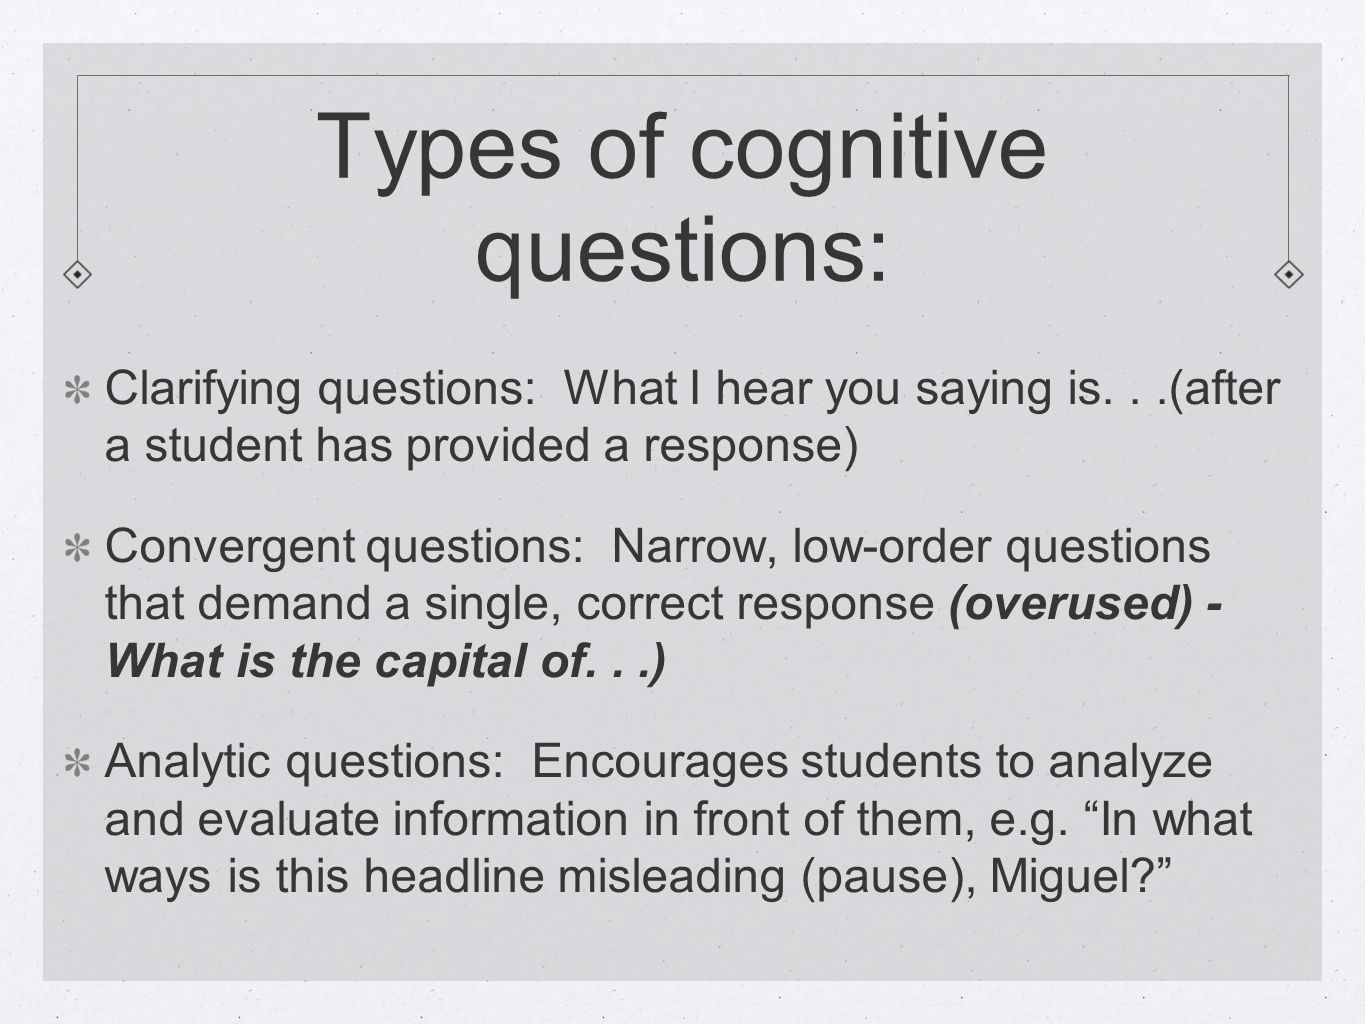 Additional Types of Questions: Divergent thinking questions: Open-ended questions having no singularly correct answer, e.g.